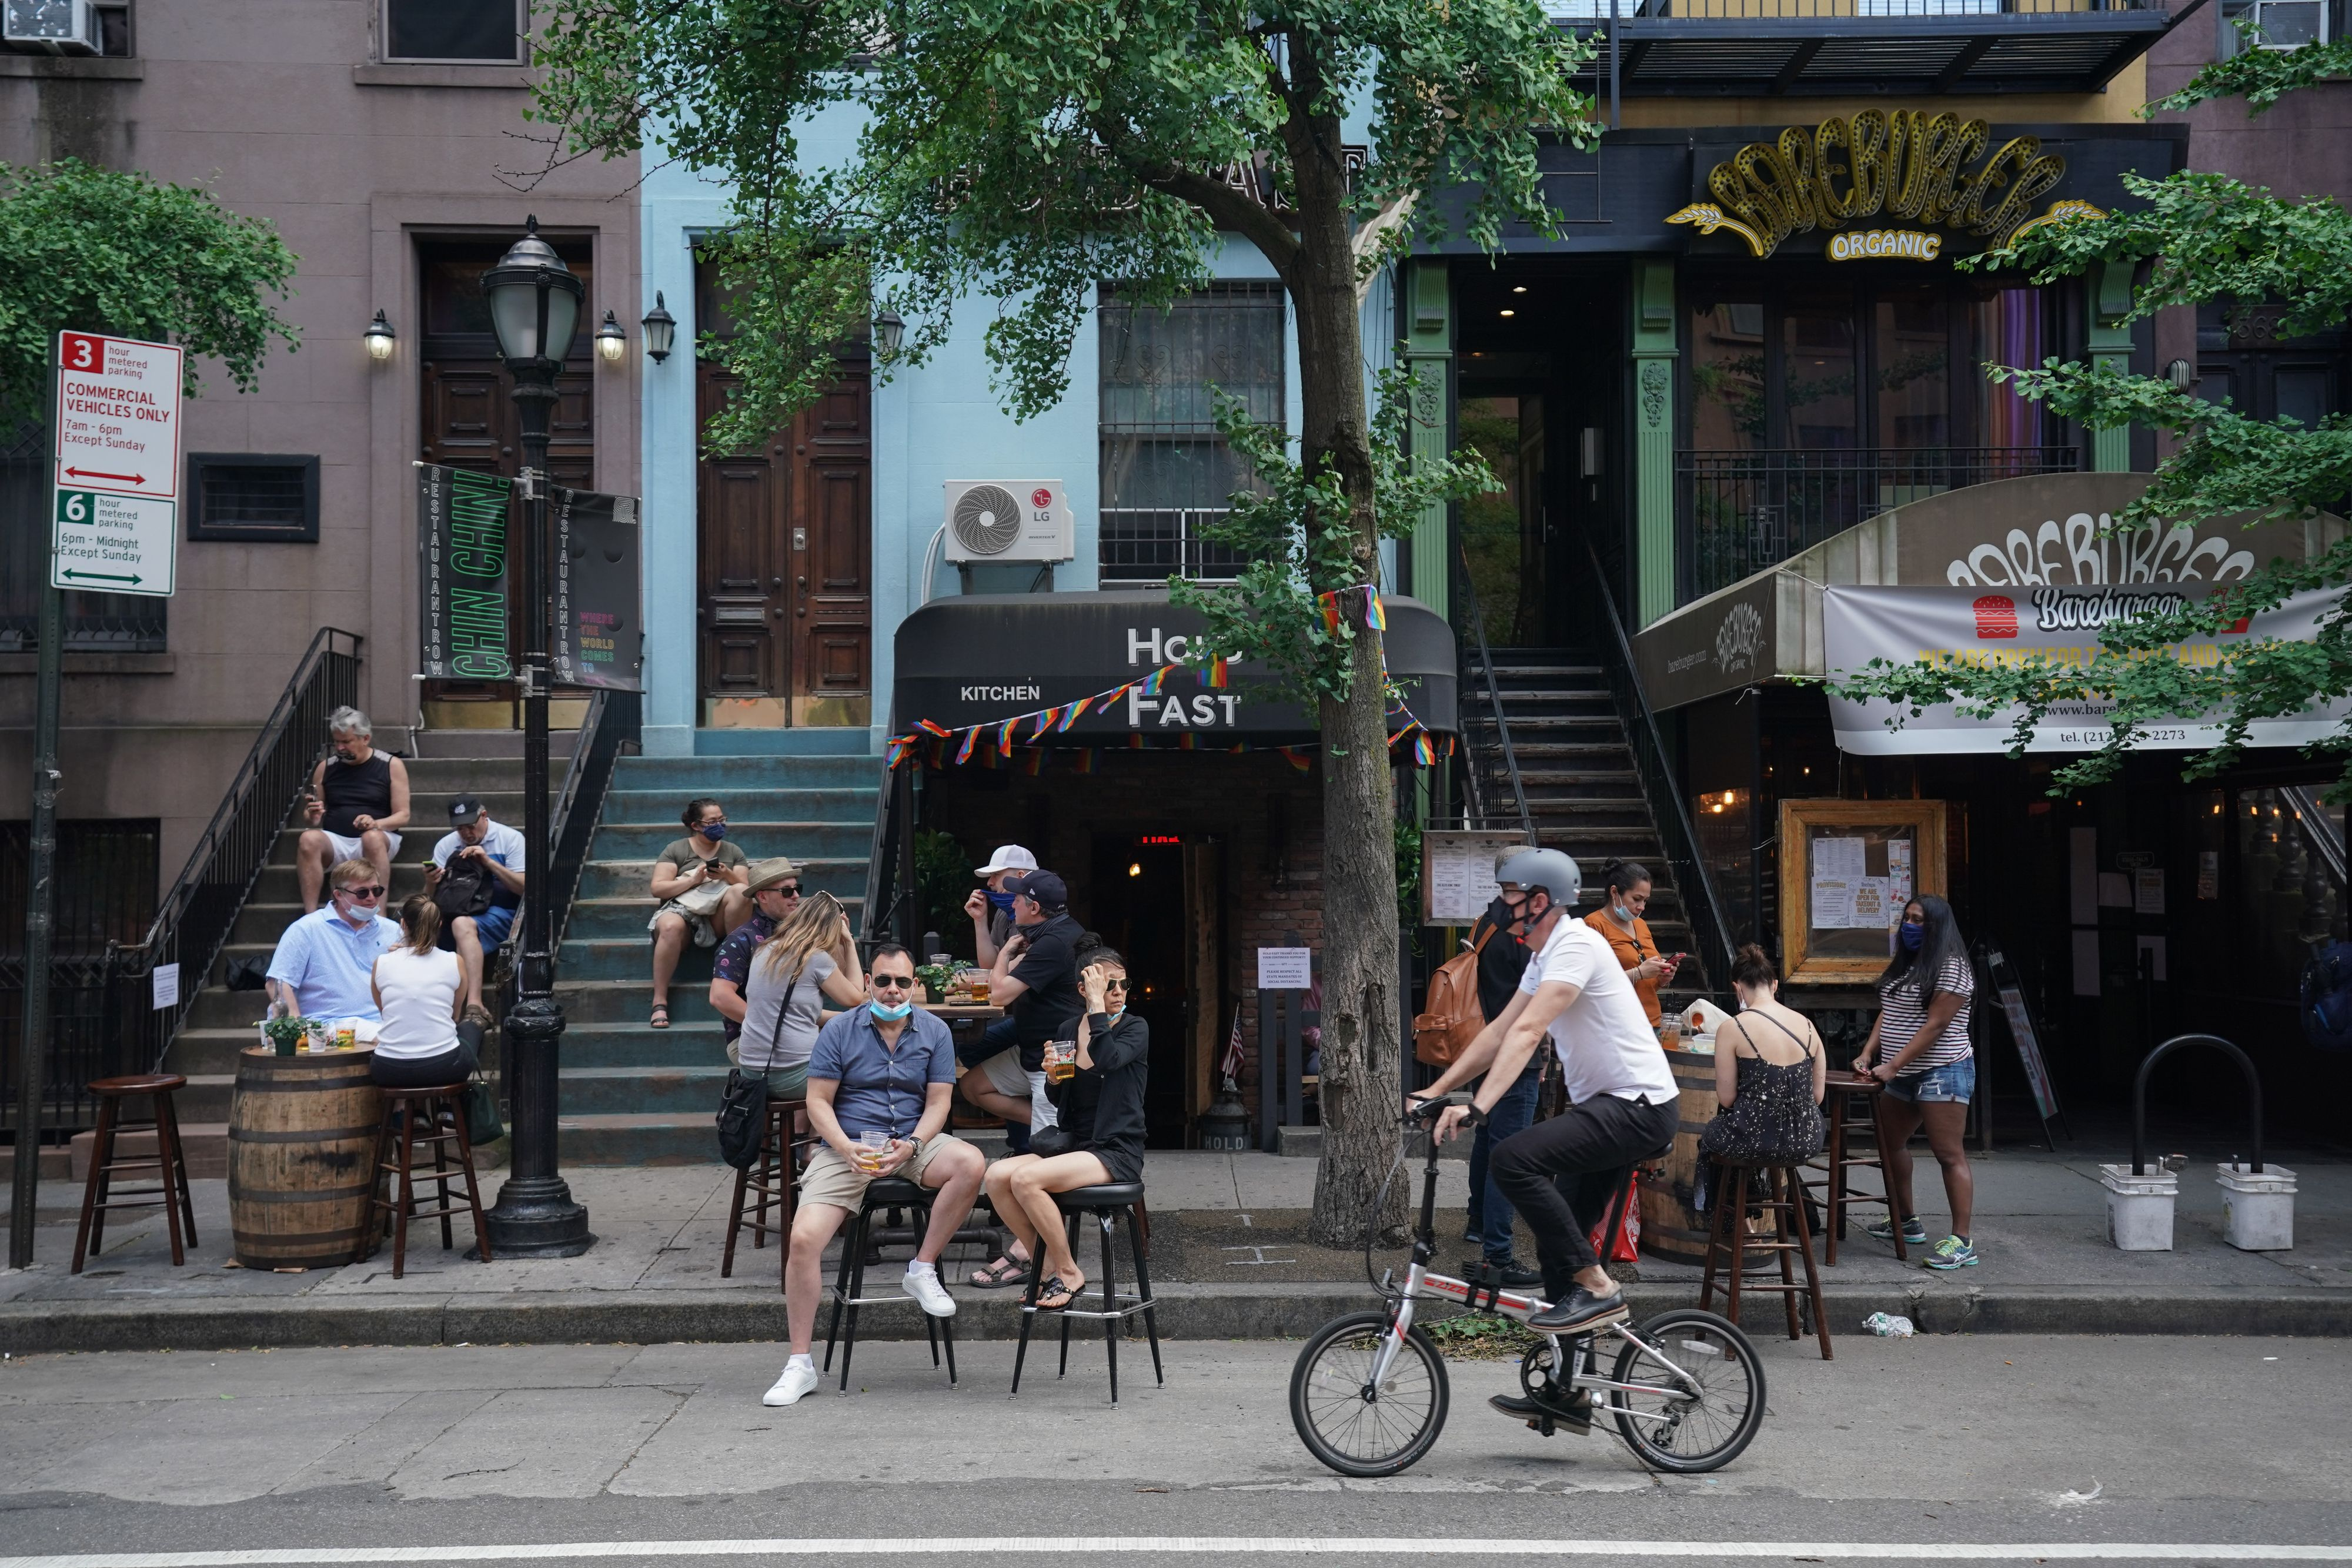 People drink outdoor at bars and restaurants in the Hells Kitchen neighborhood of New York on June 7, 2020. (Photo by BRYAN R. SMITH/AFP via Getty Images)